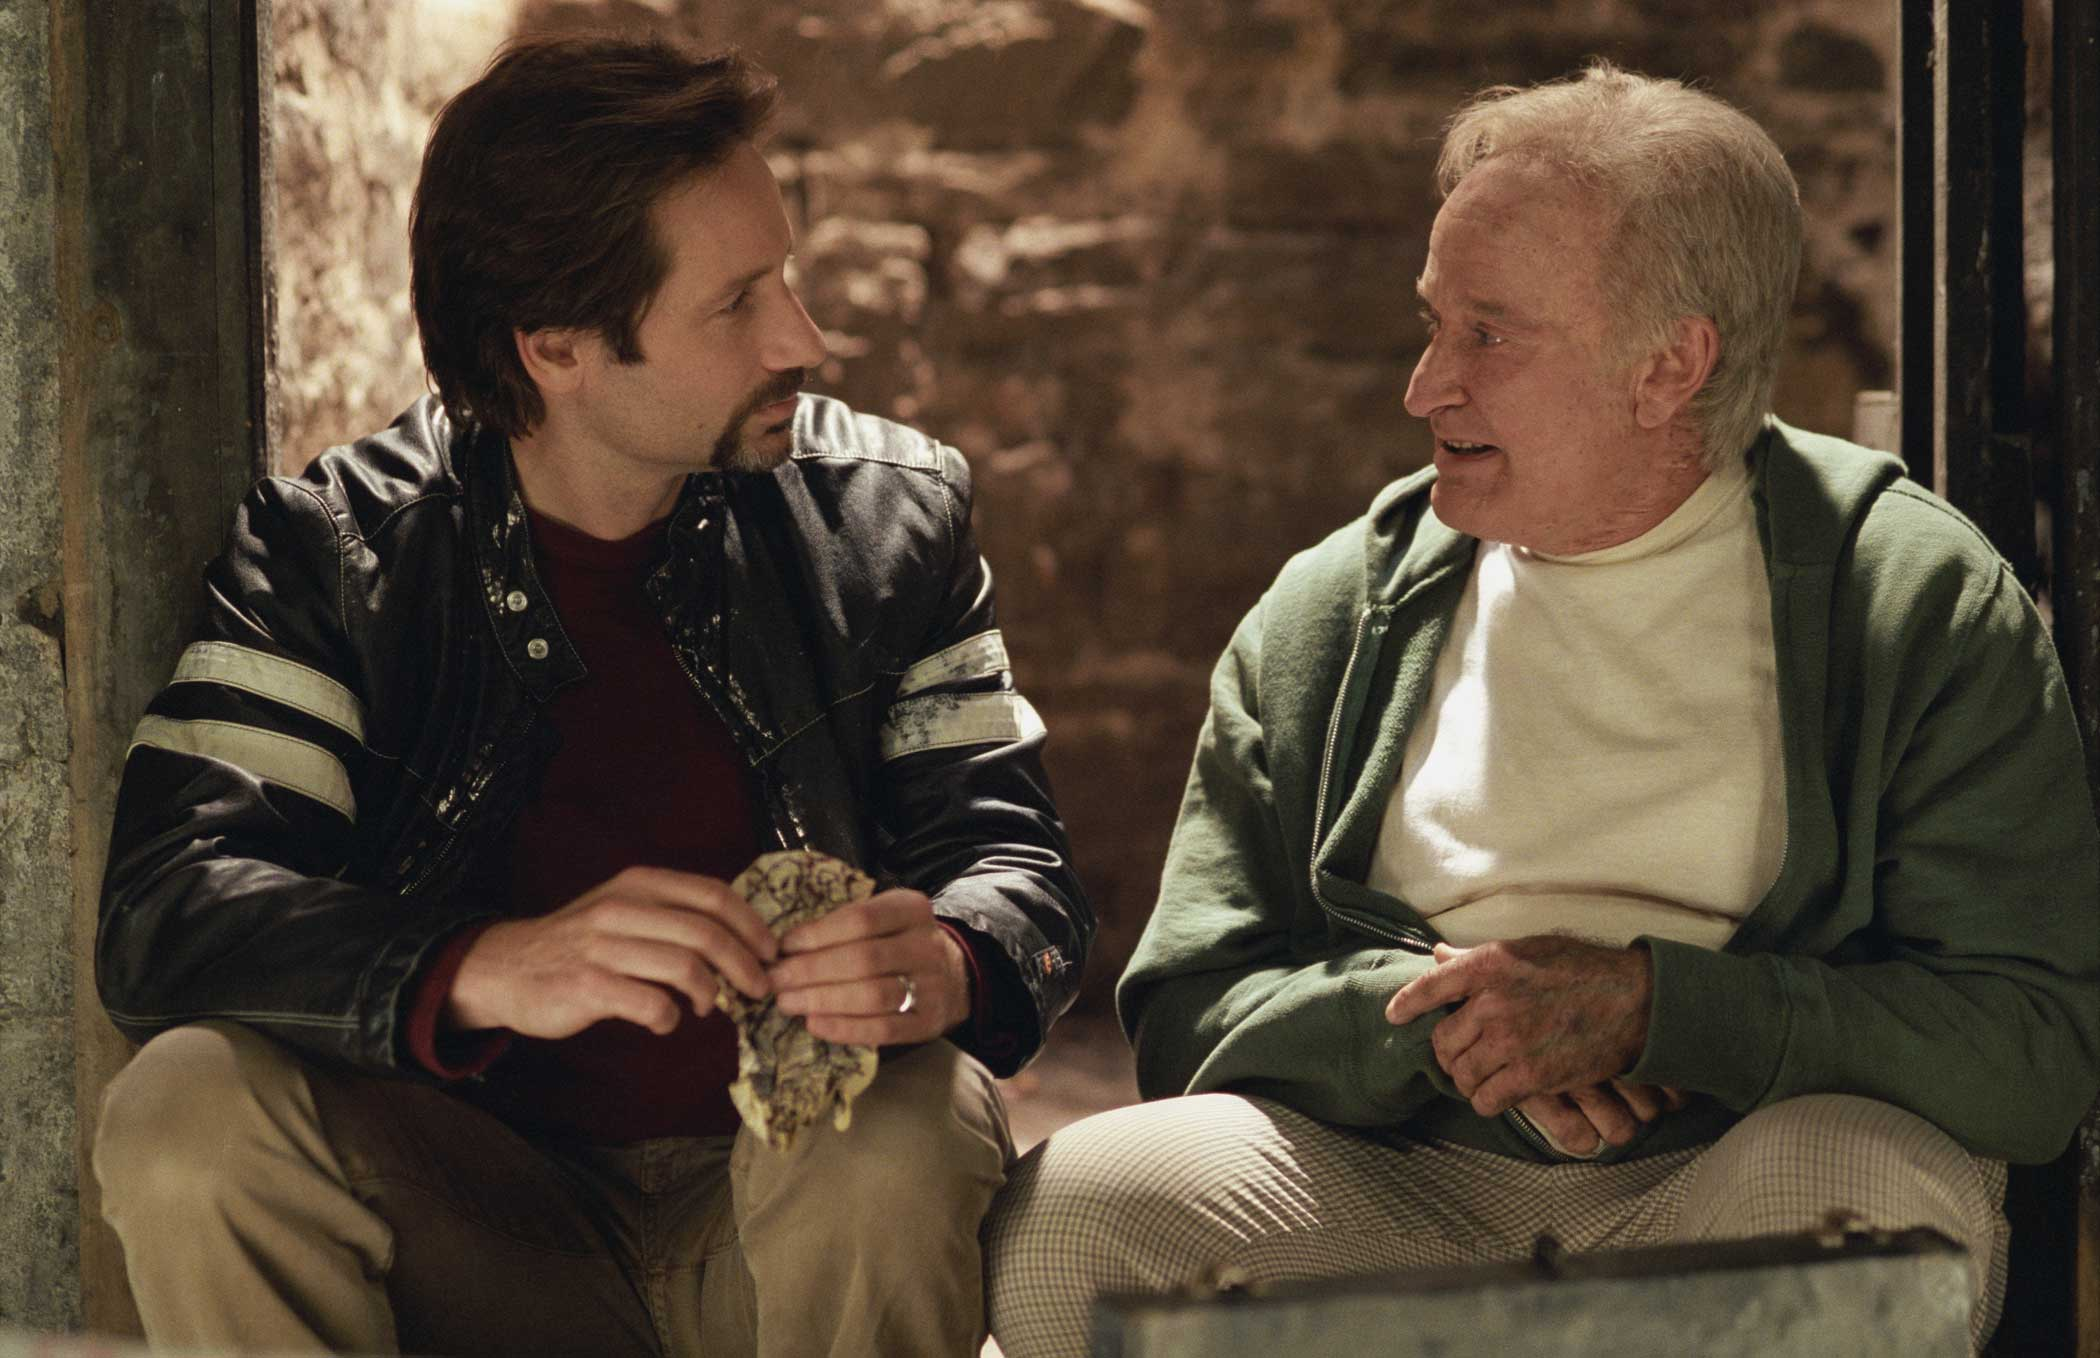 house of d 10 Years with David Duchovny: On Loving Garry Shandling, Missing Bonnie Hunt, and Fighting for the Future